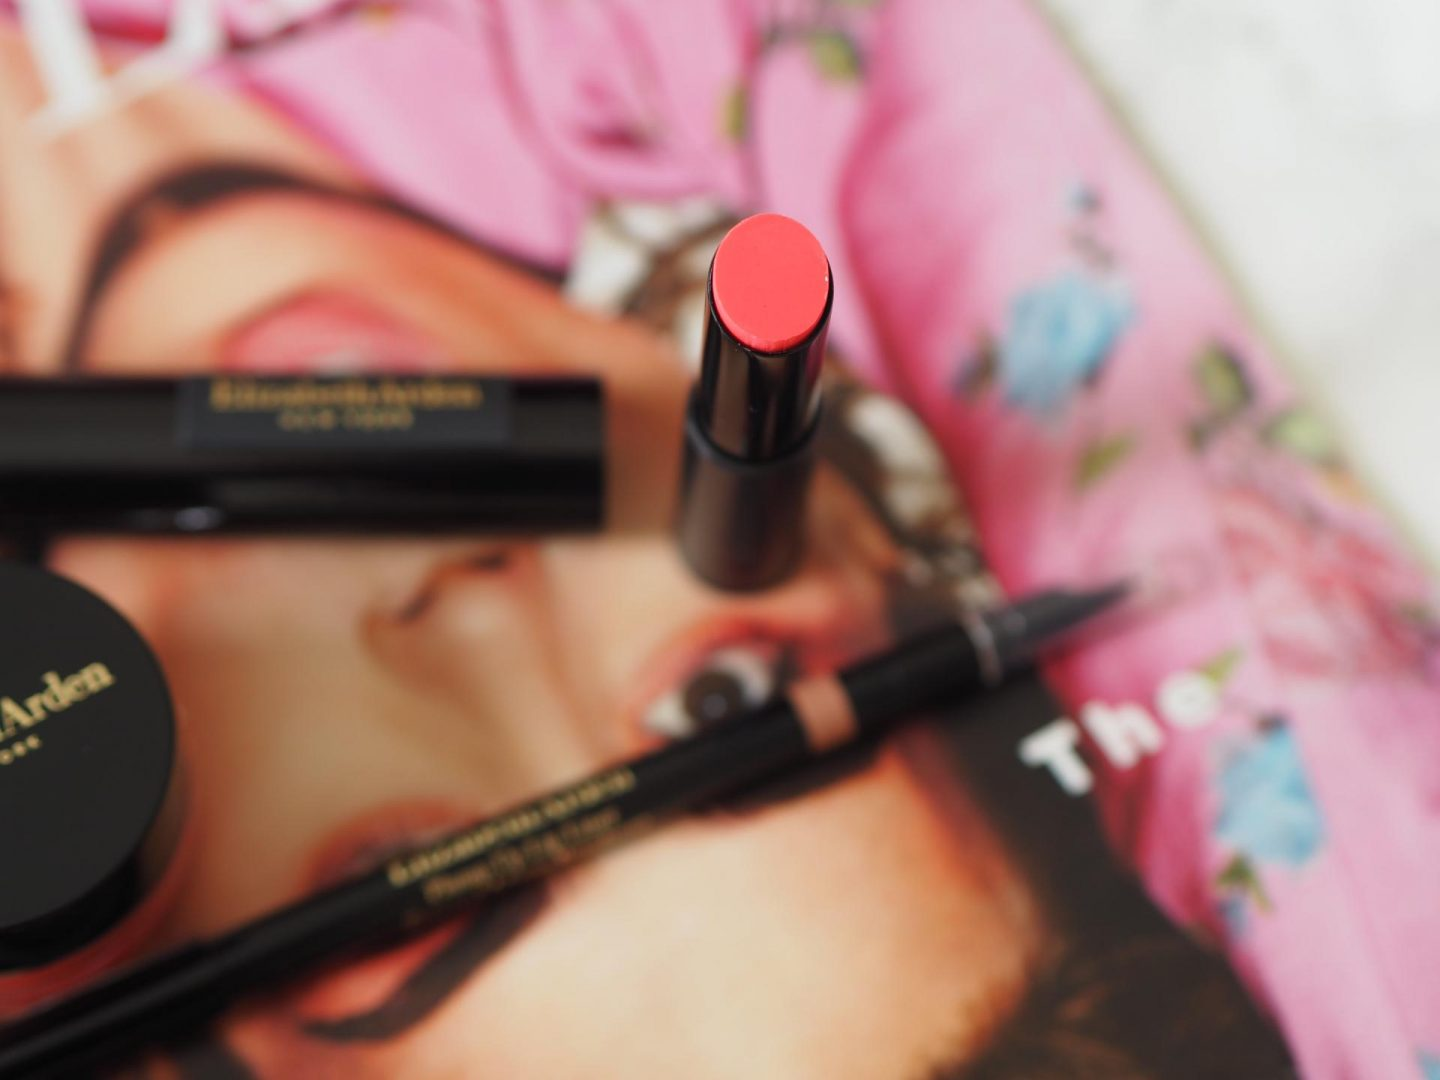 Beauty Haul - Product: Elizabeth Arden Plush Up Lip Gelato – Strawberry Sorbet